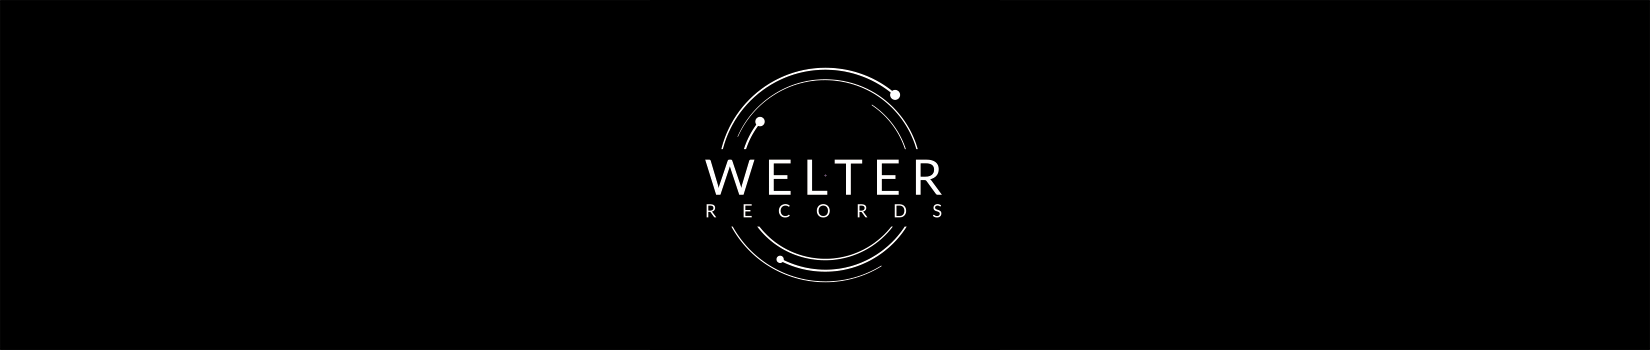 Welter Records